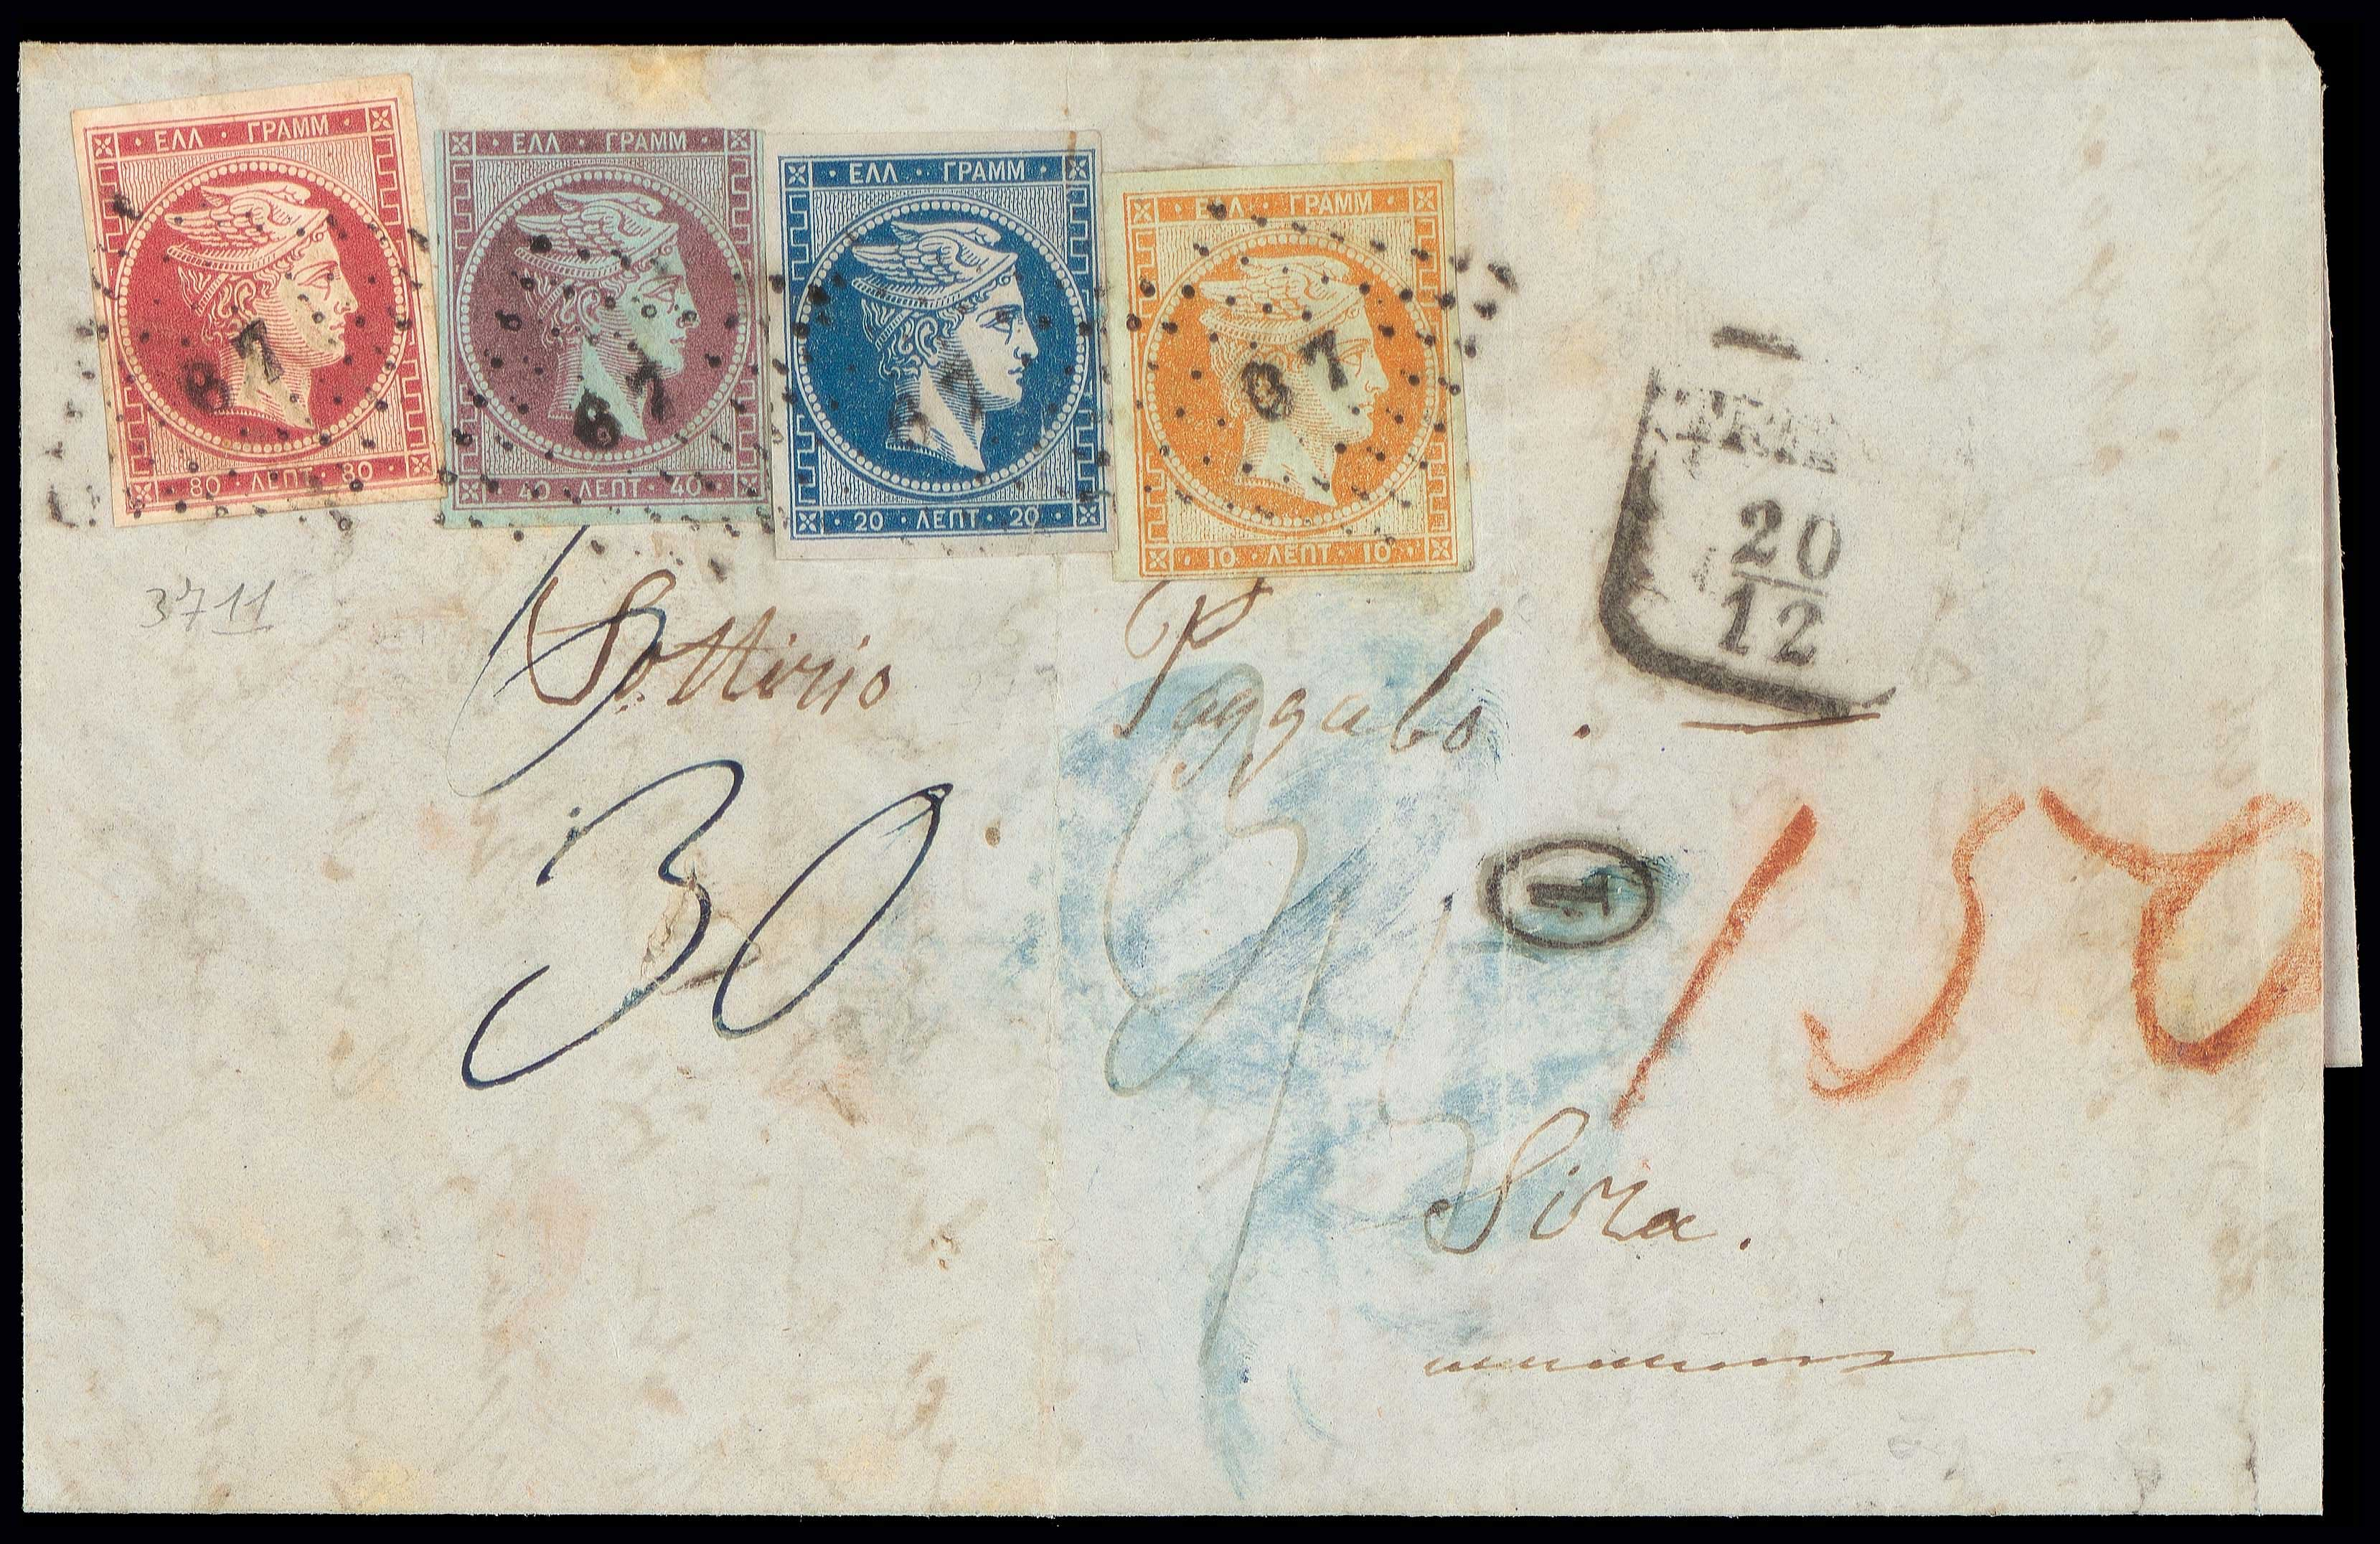 Lot 115 - -  LARGE HERMES HEAD 1861/1862 athens provisional printings -  A. Karamitsos Public & LIVE Bid Auction 651. Large Hermes Heads Exceptional Stamps from Great Collections